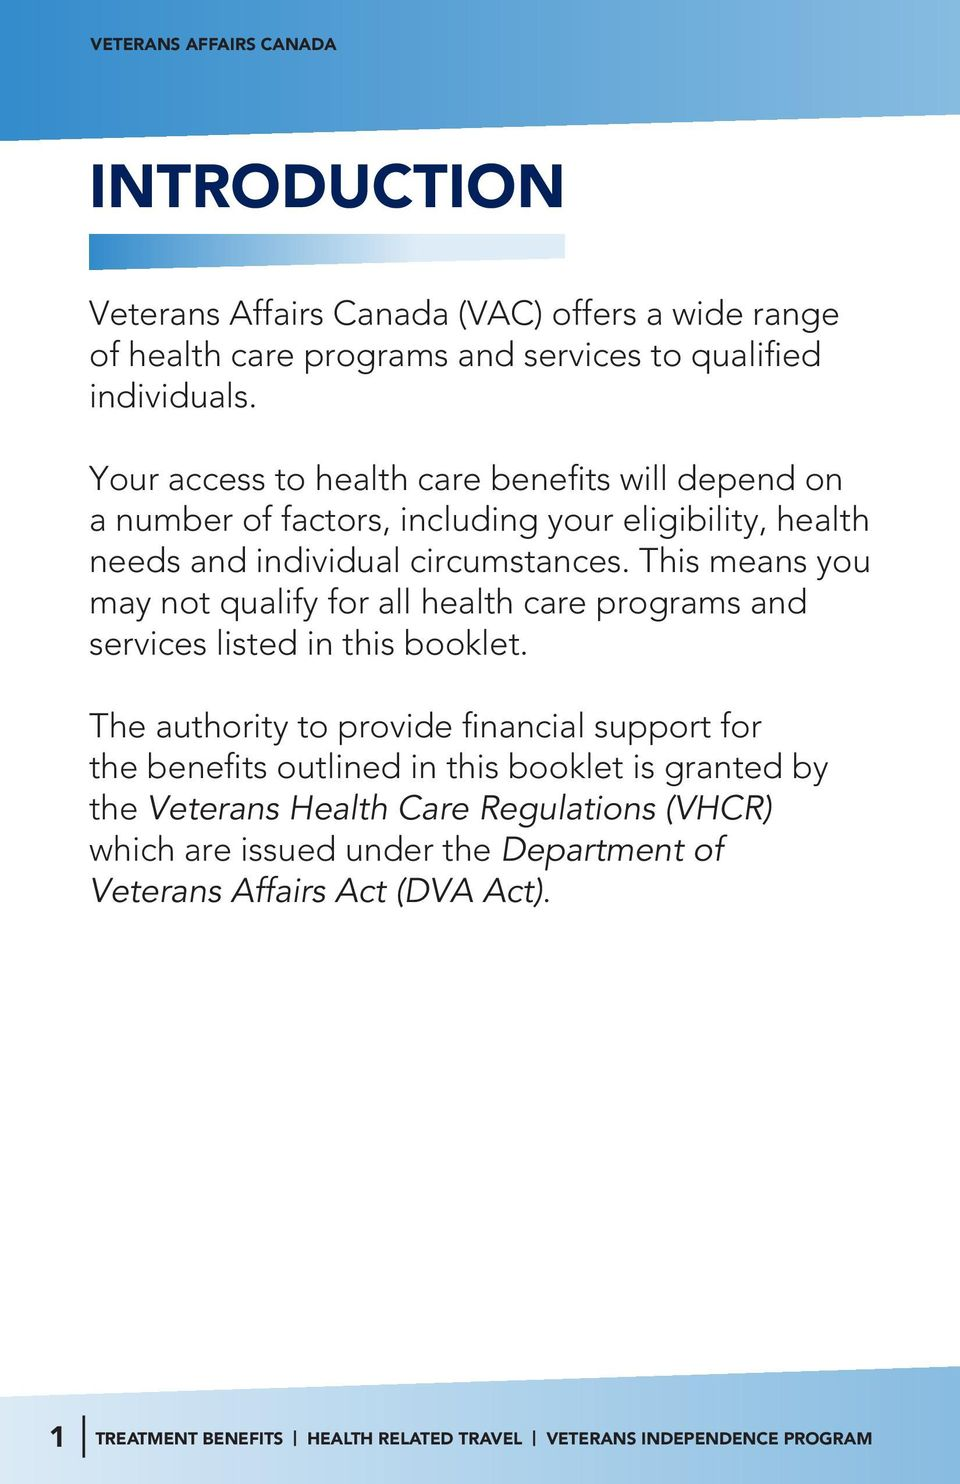 This means you may not qualify for all health care programs and services listed in this booklet.